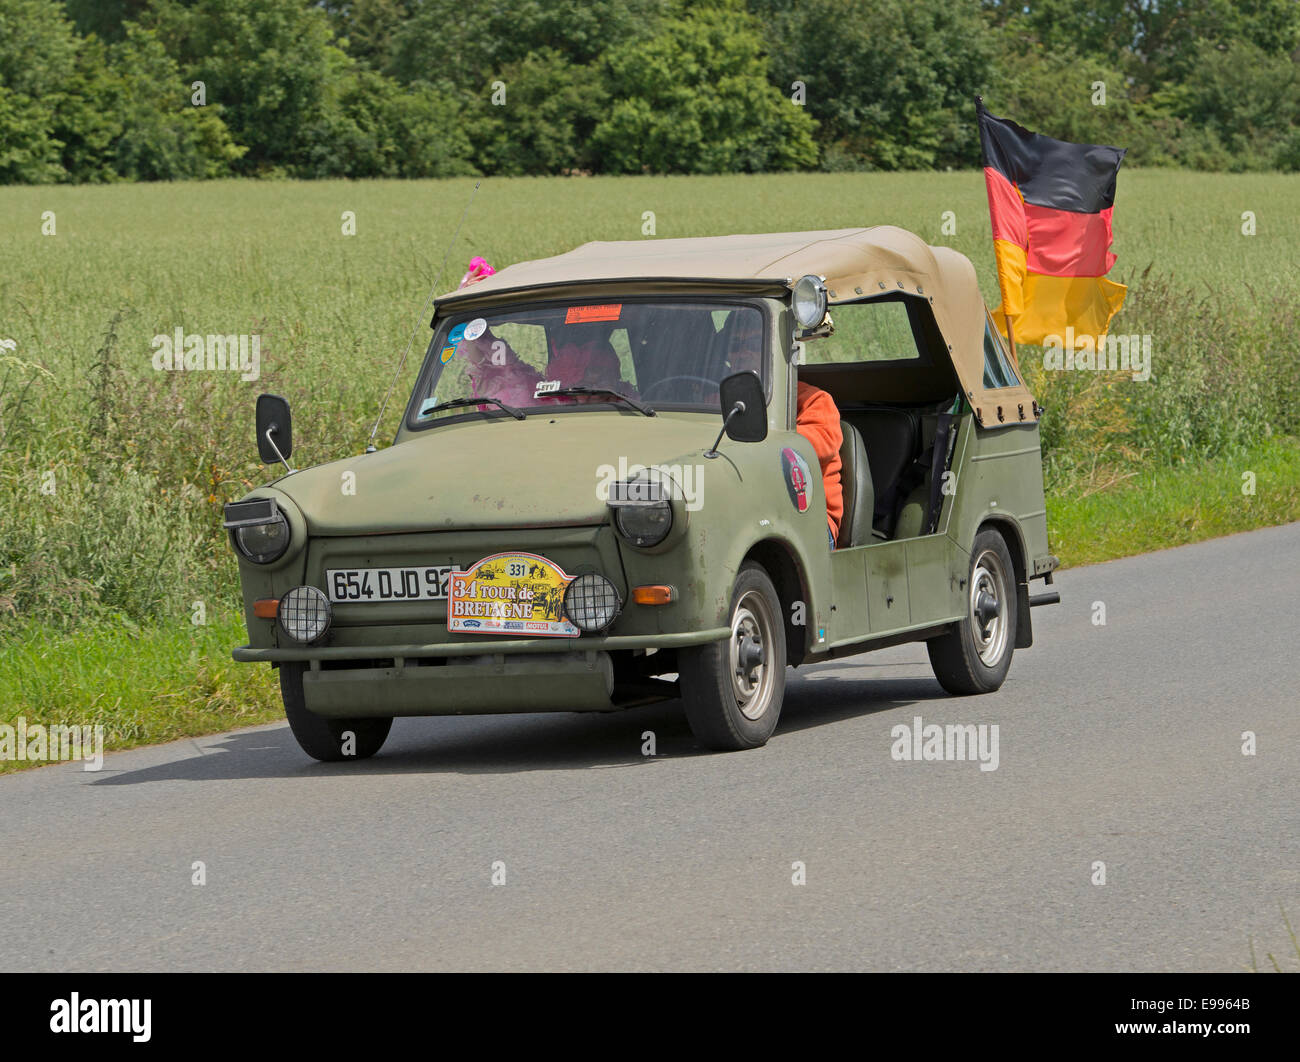 Trabant Kubel-Armee RDA Jeep of 1969 in the Tour de Bretagne 2014, France - Stock Image